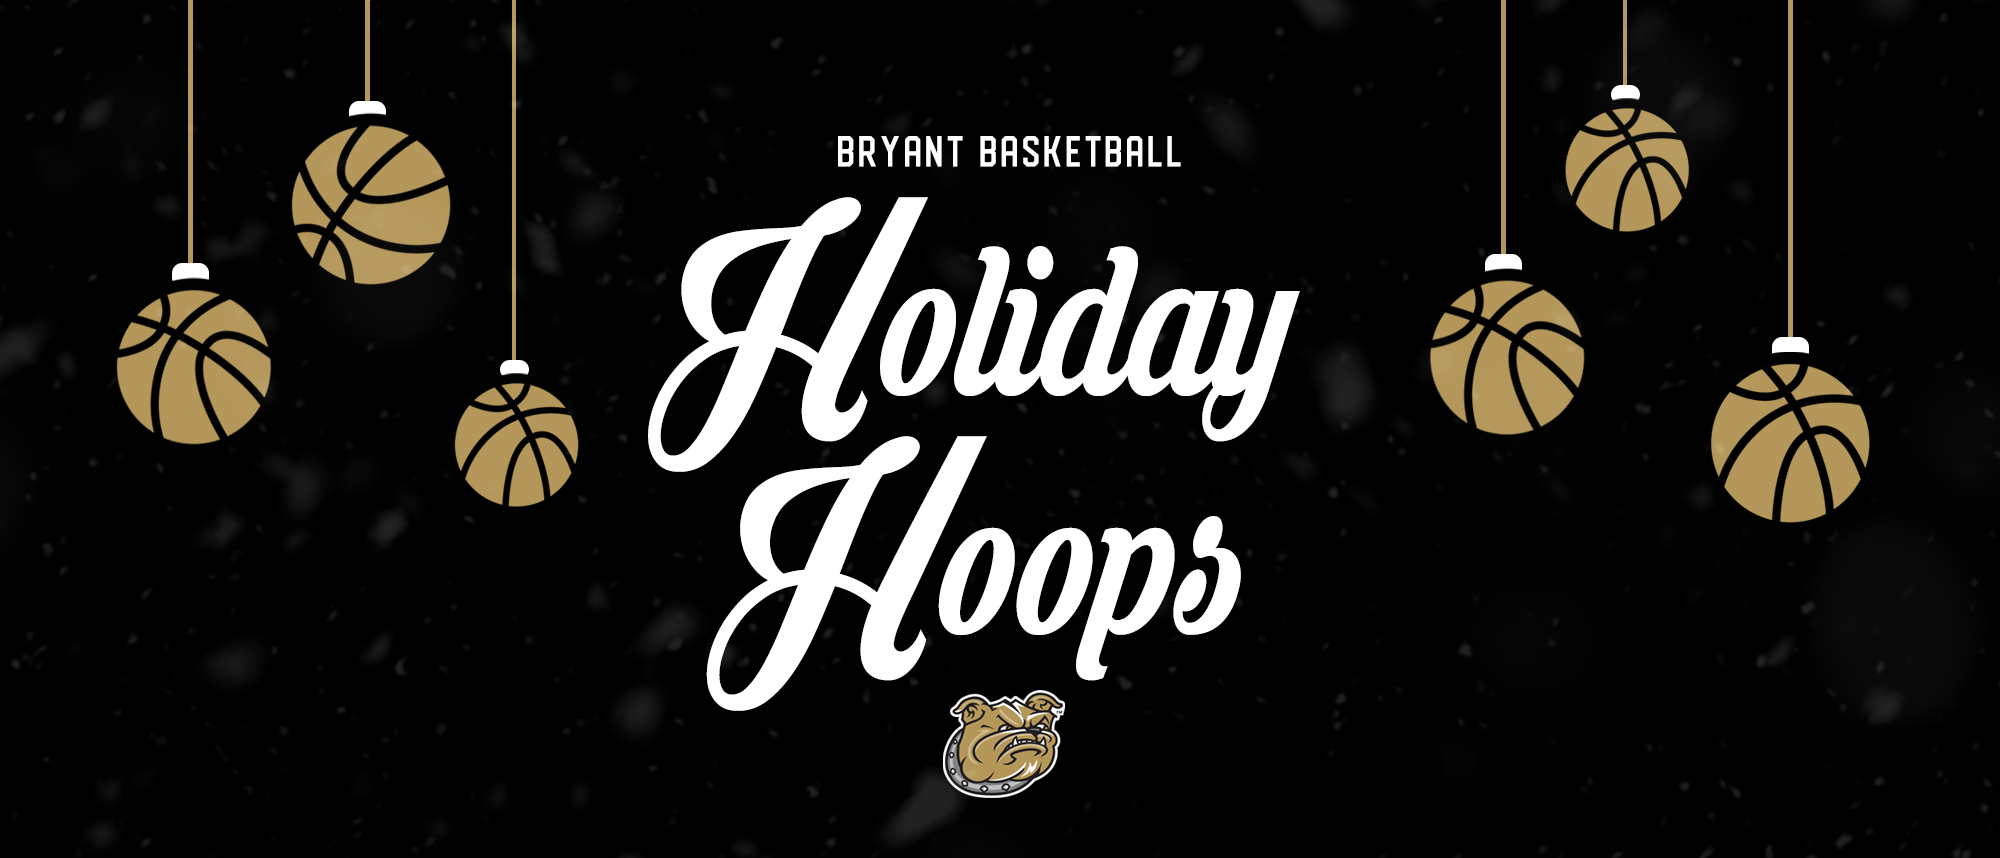 Holiday Hoops ticket pricing returns for 2018-19